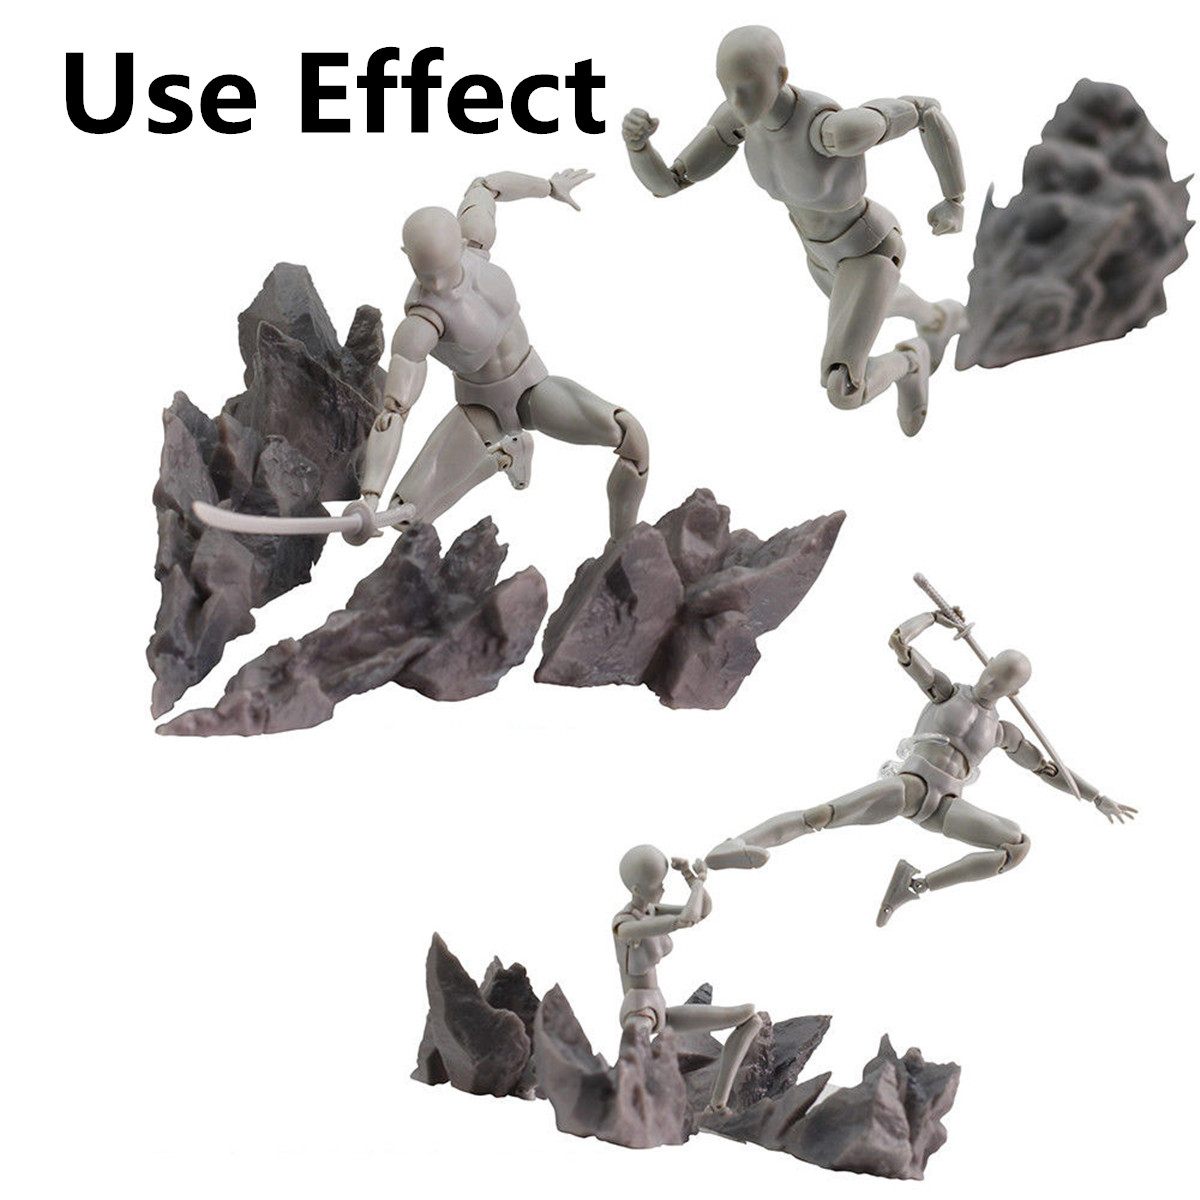 DIY Anime Figure Burning Effects Display Stand for S.H.Figuarts Tamashii Toy